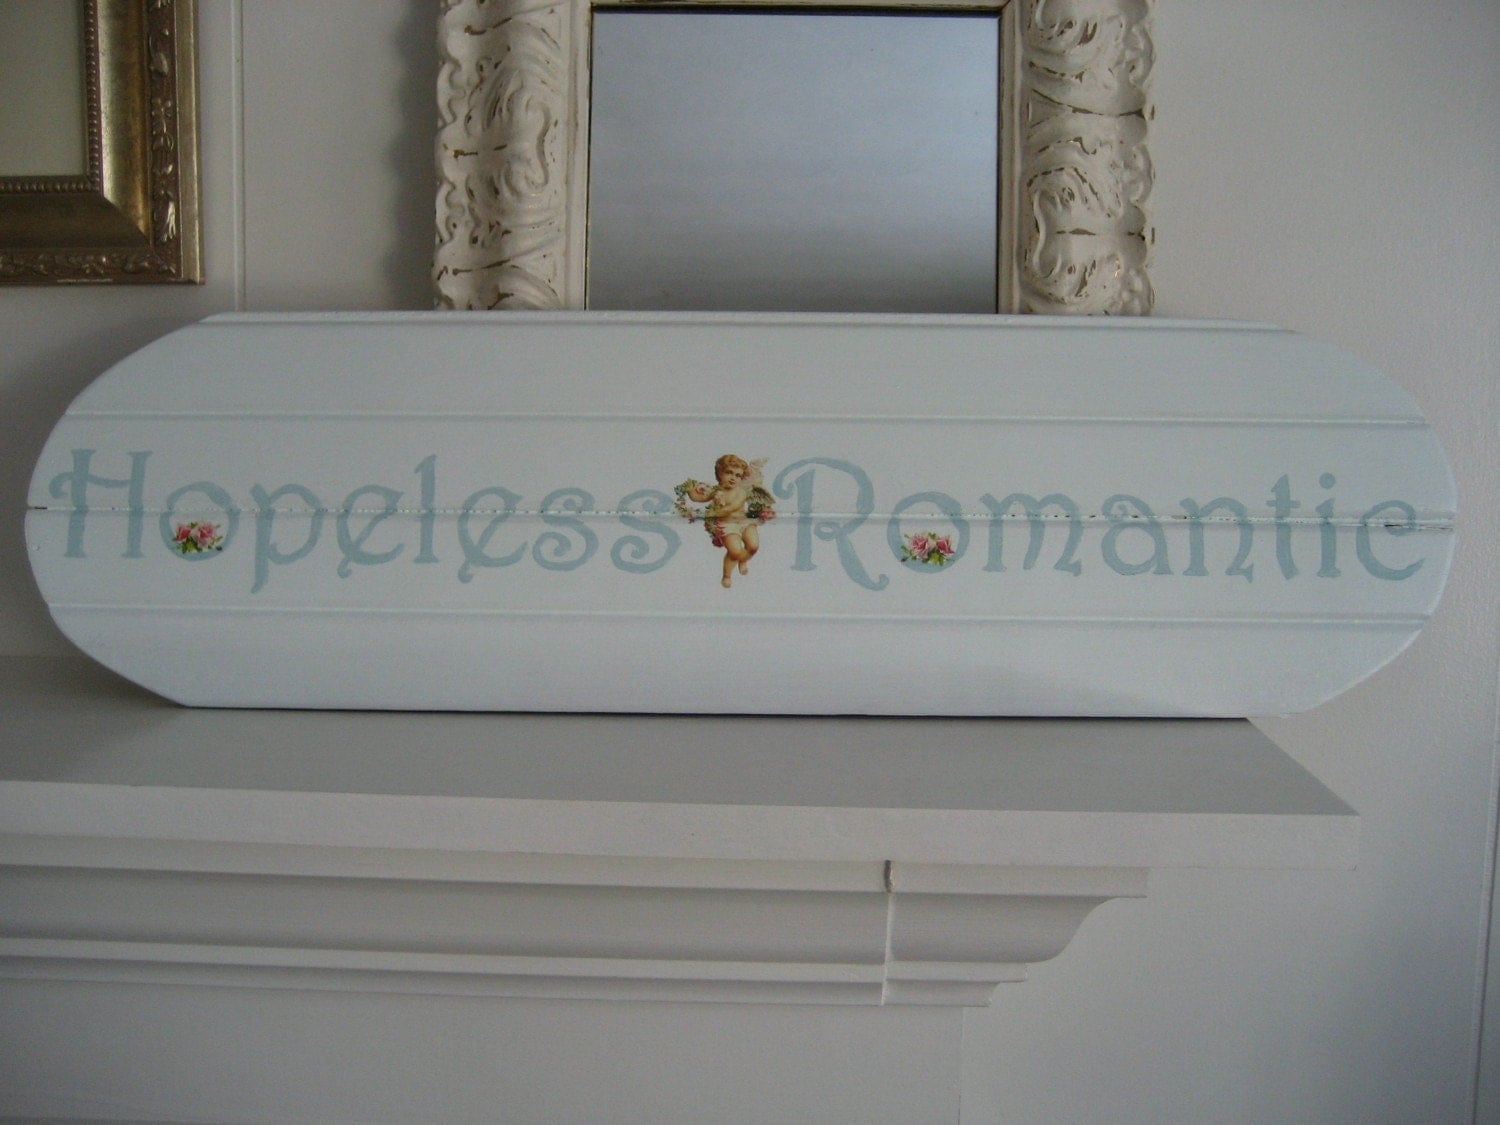 Vintage Beadboard Sign - Hopeless Romantic - Pale Aqua with Roses and Cherubs